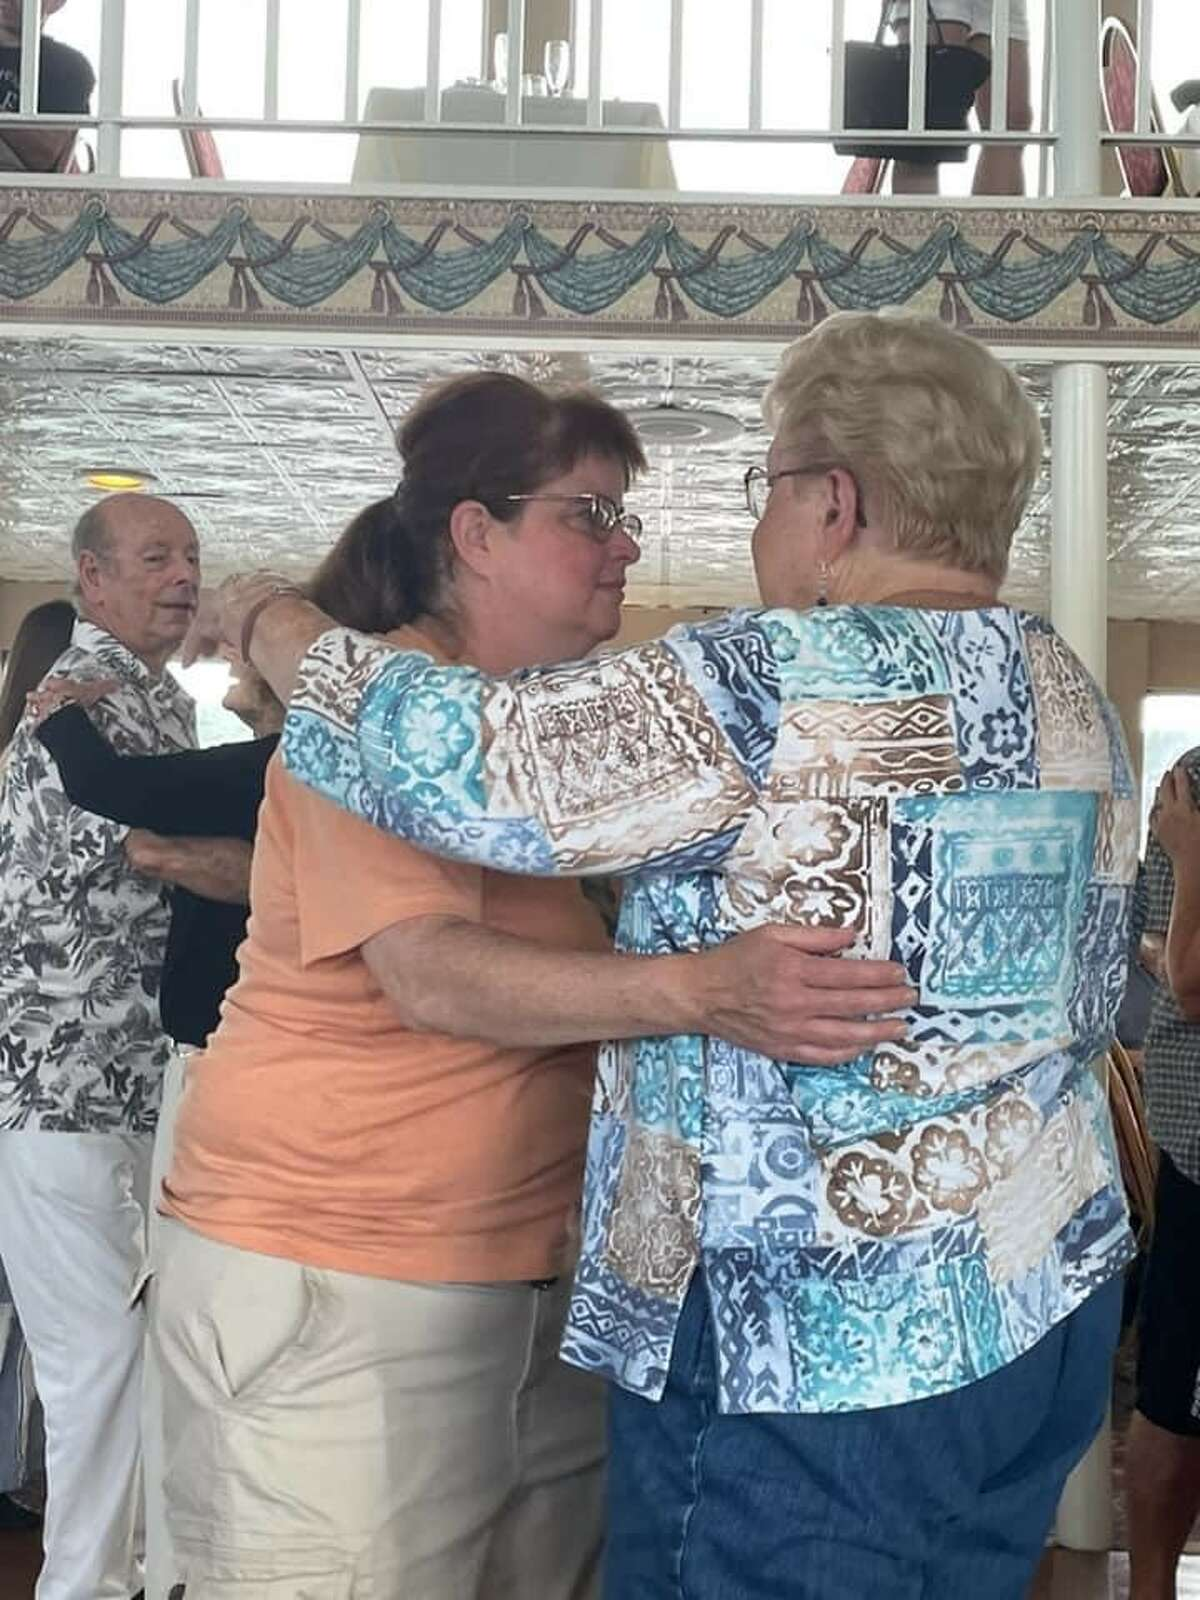 Our House member Gana McDermott dances with her mother, Georgianna McDermott, during the group's cruise on Lake George.